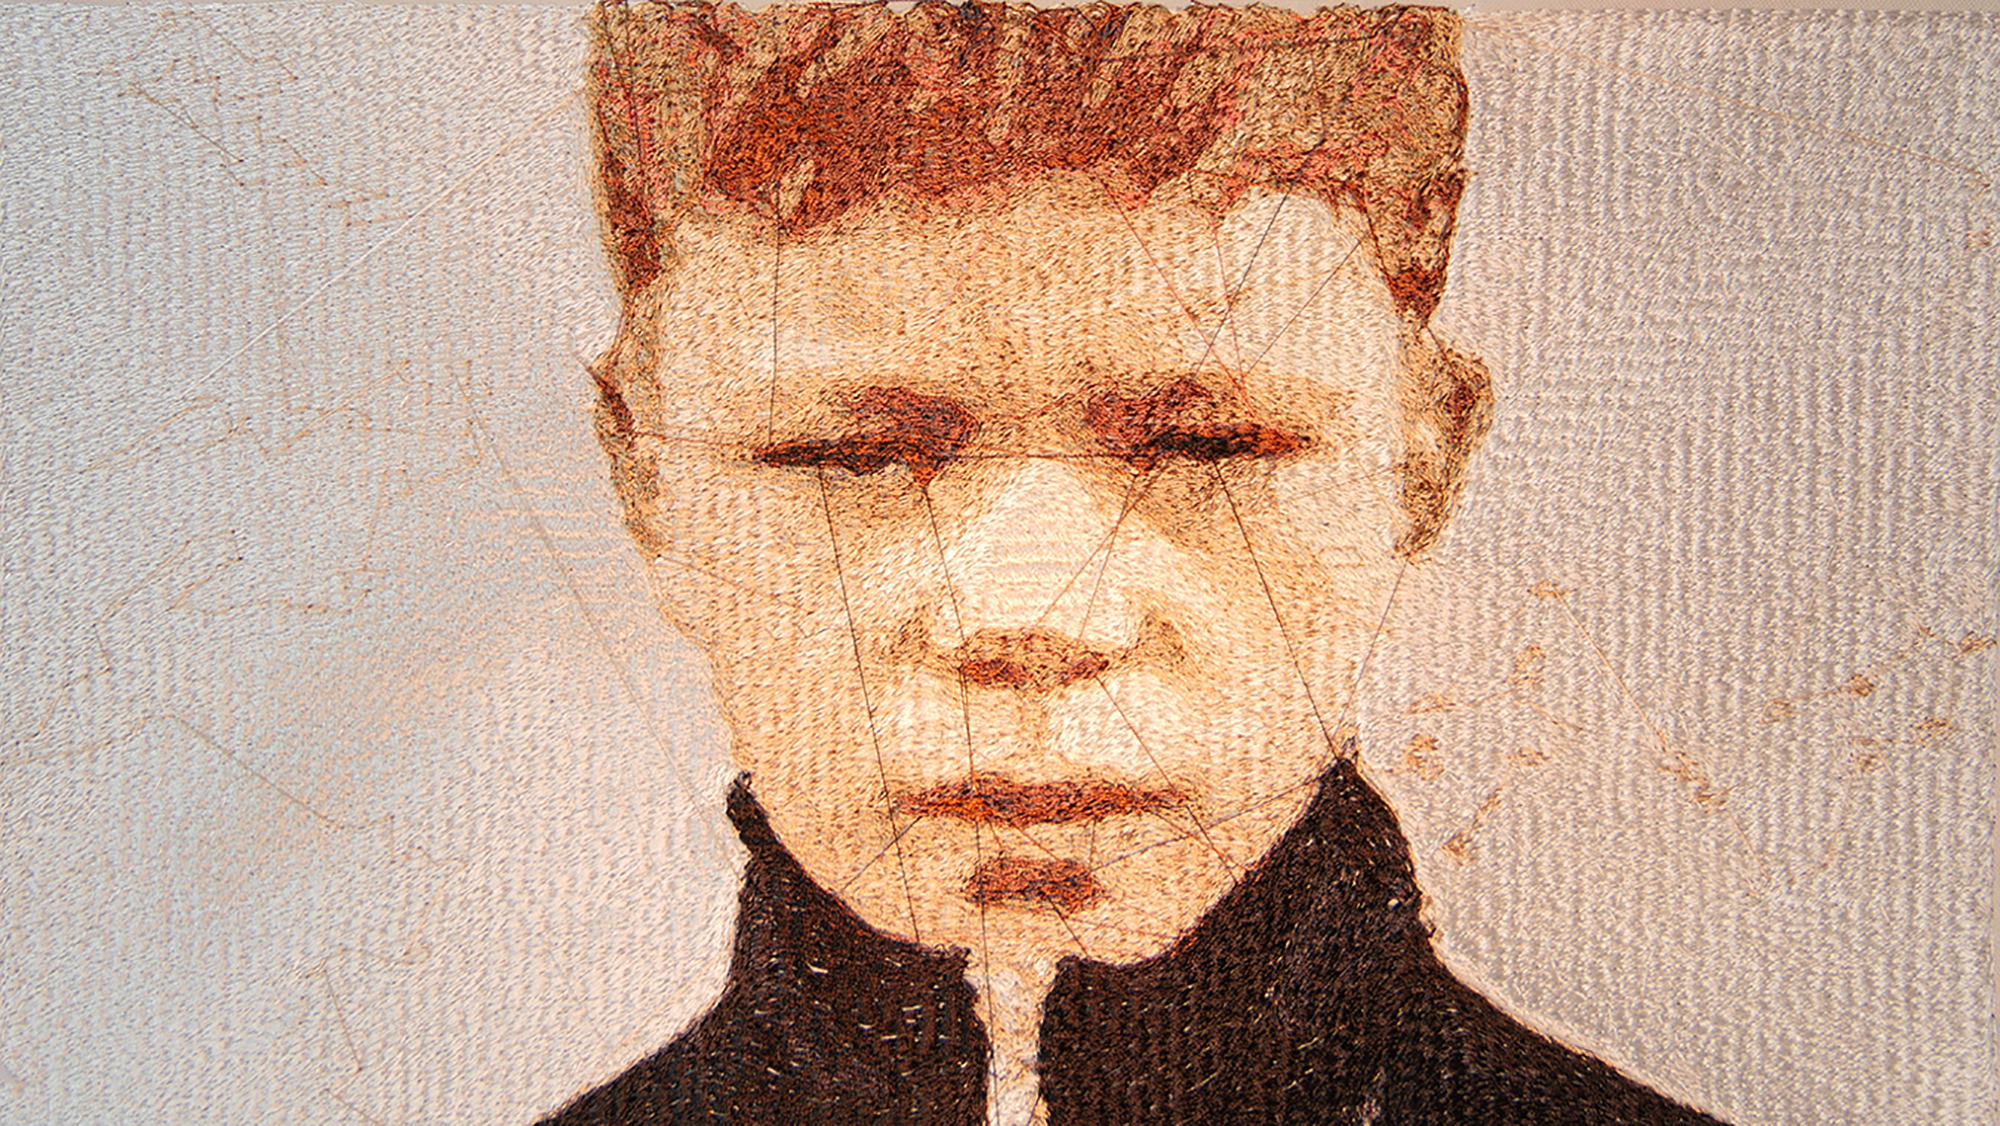 "BlairMartinCahill_1 boy_embroidery_12"" X 6.5""_2019_$500.jpg"